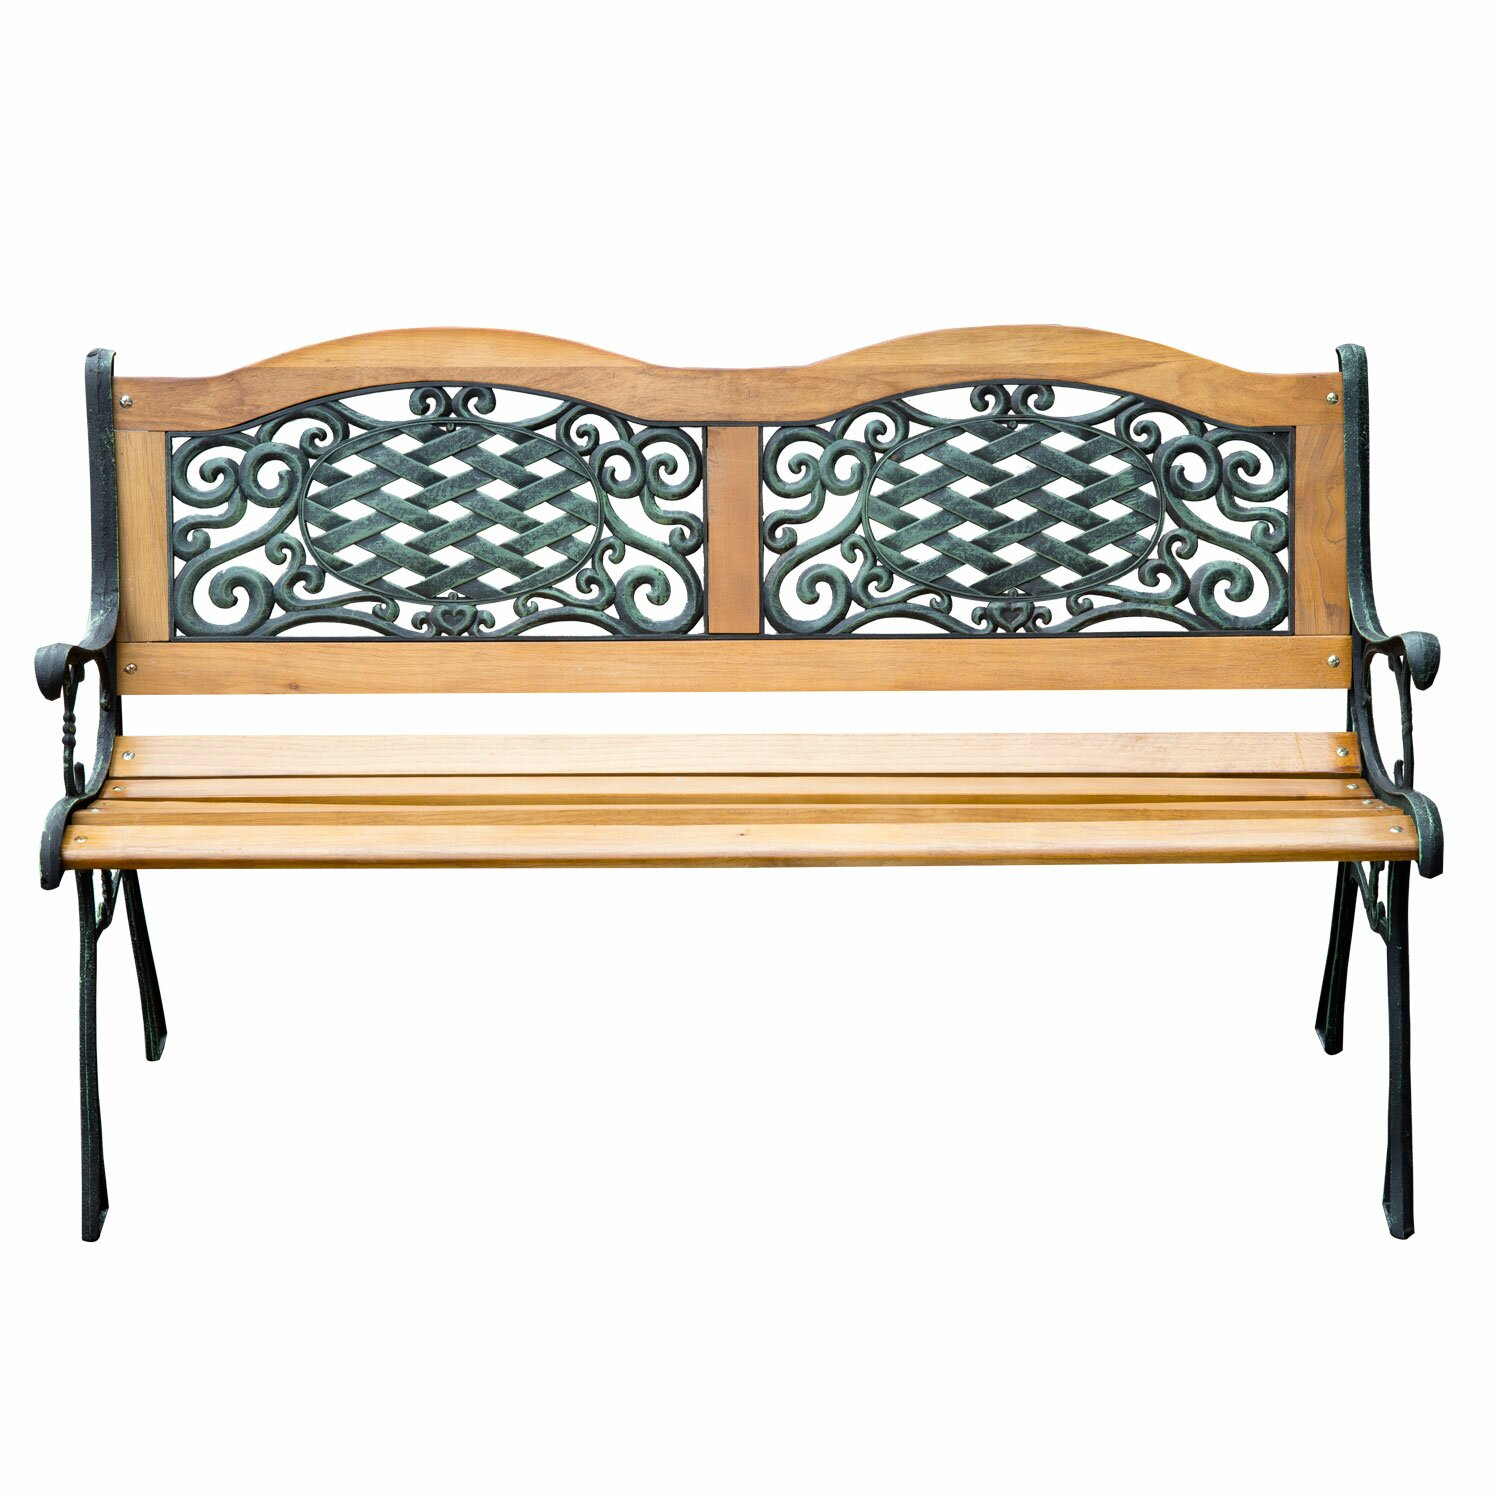 Outsunny outdoor patio park bench reviews wayfair for Outdoor furniture benches